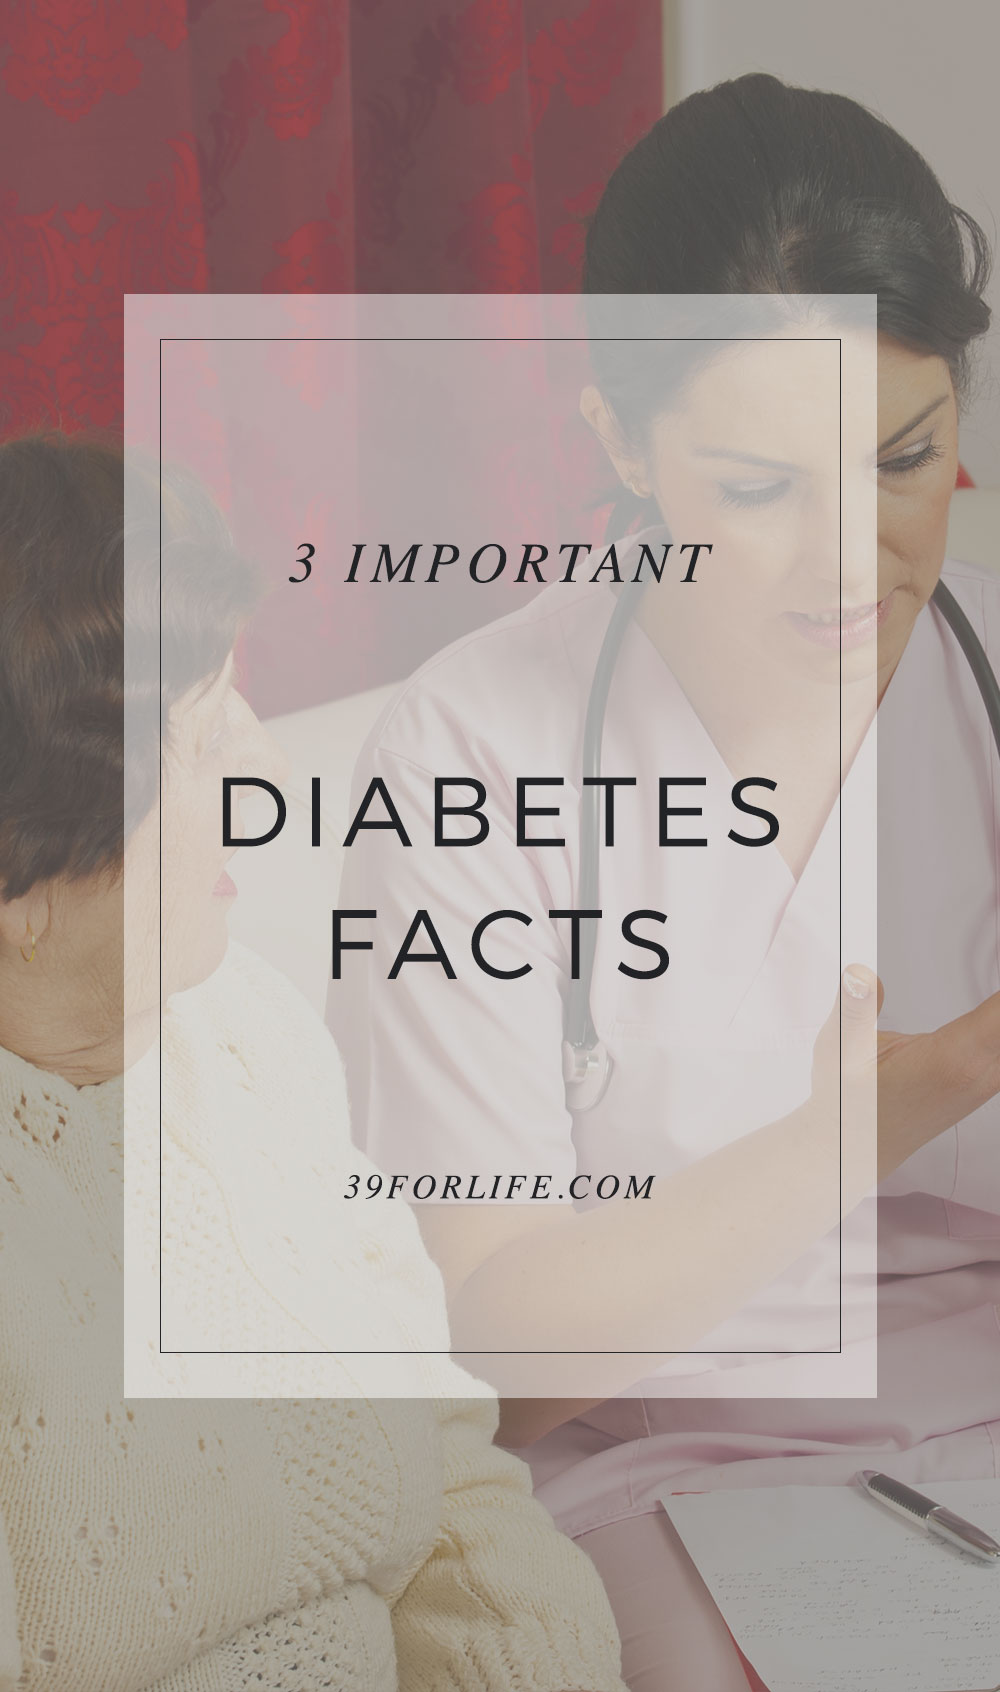 You can prevent diabetes. By understanding your body's functions, and exploring new methods for treatment, you can rid your body of this disease.